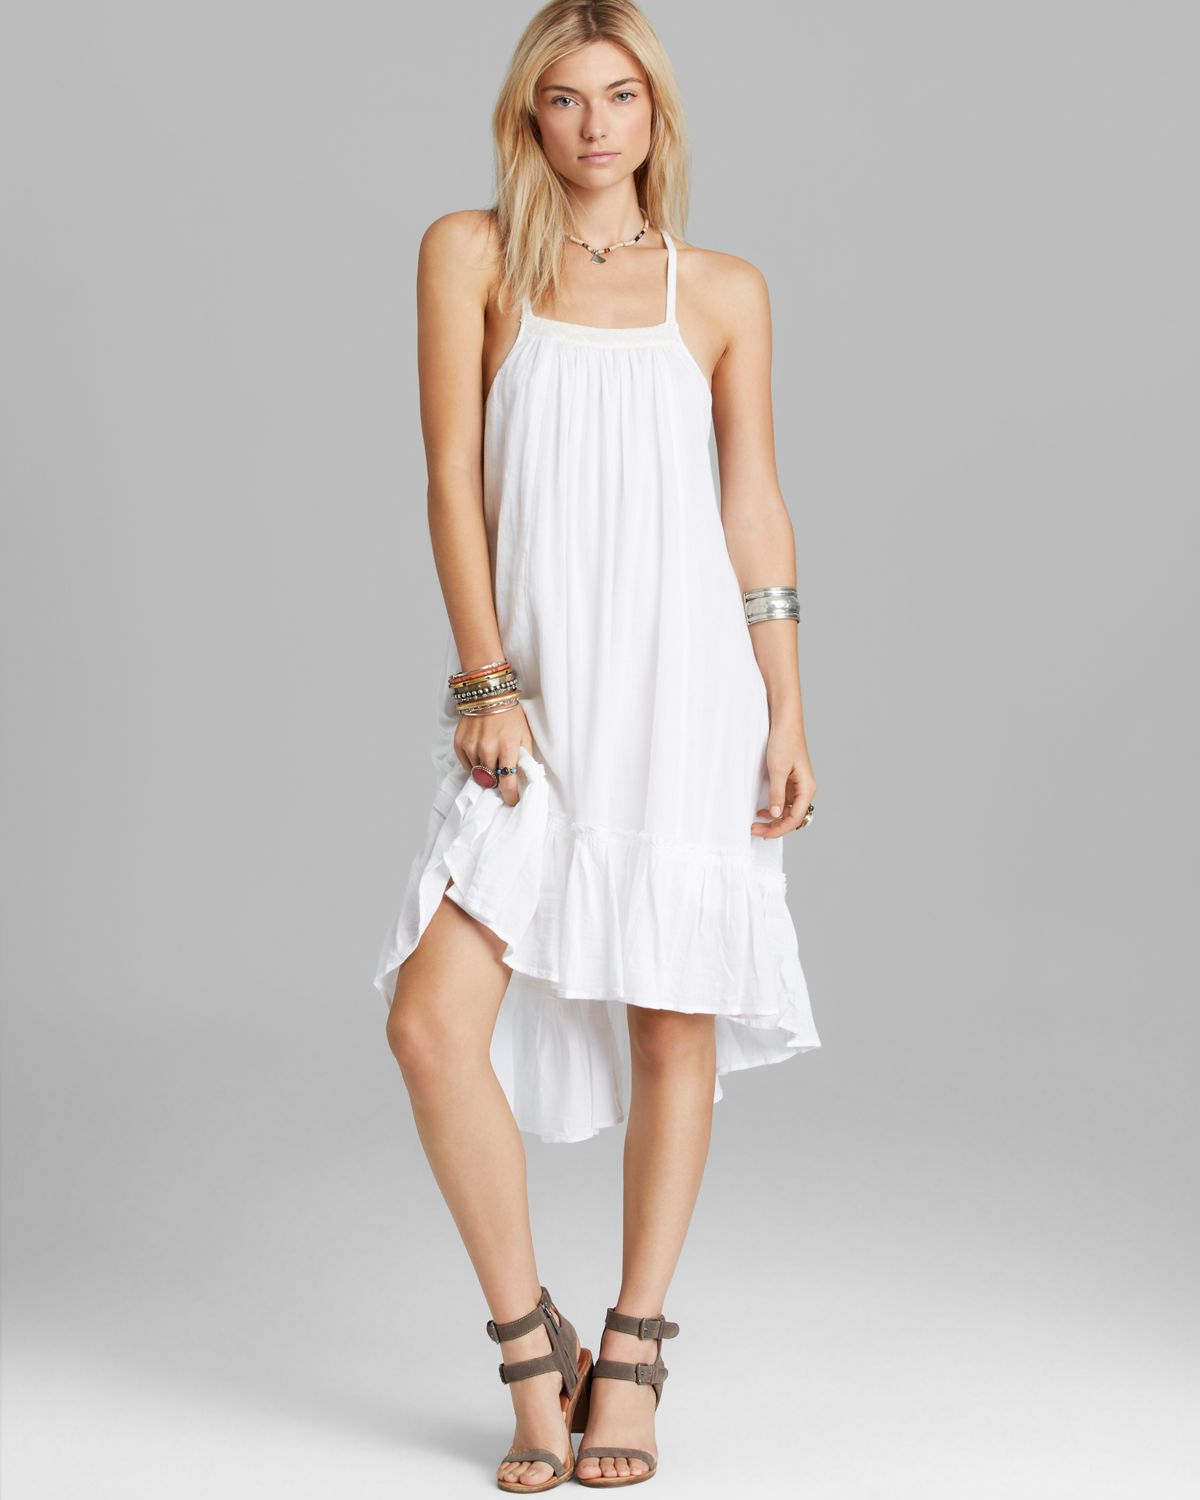 034265fe9fa Free People Dress - Solid Gauze in White - Lyst